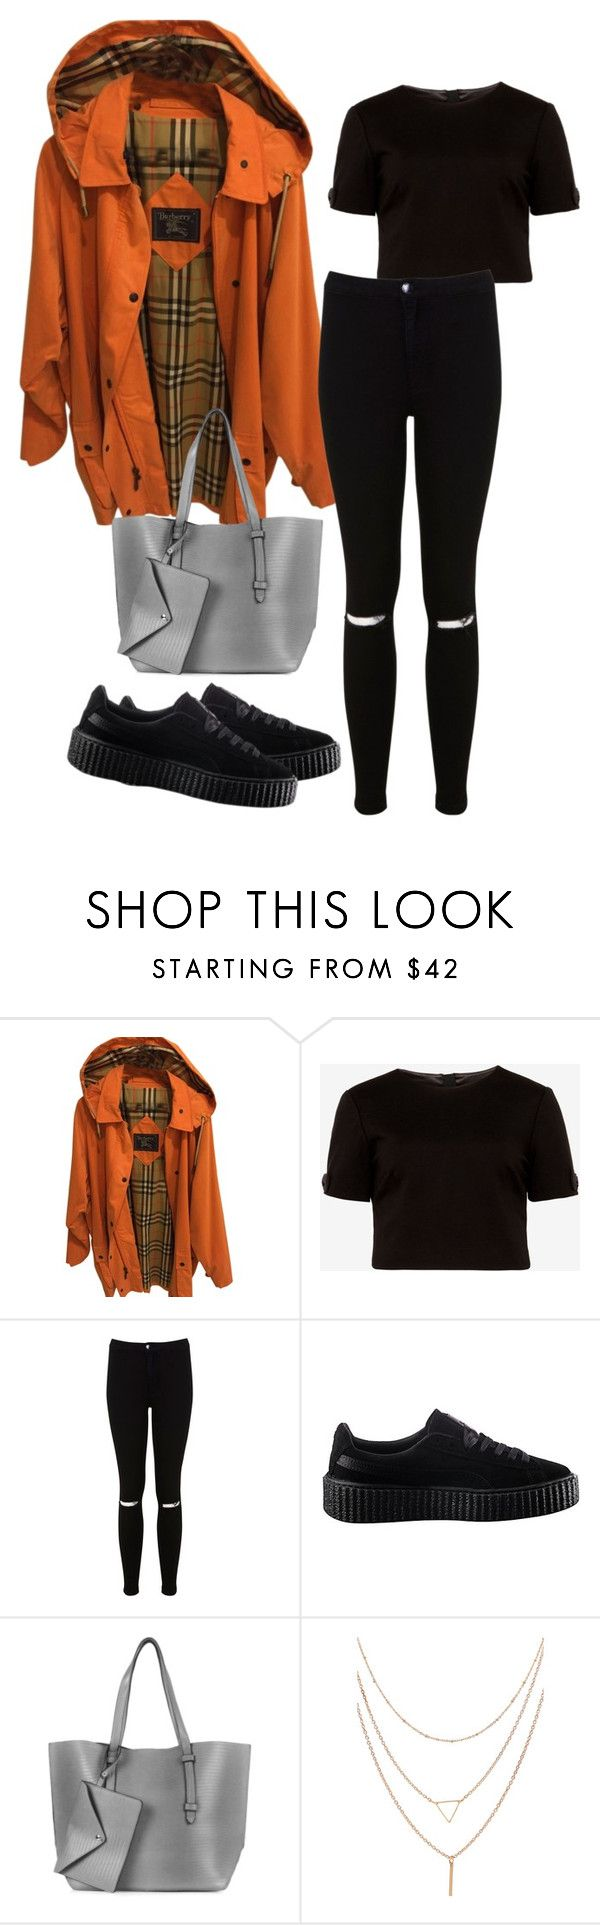 """Sin título #301"" by franciscagomezm on Polyvore featuring moda, Burberry, Ted Baker, Miss Selfridge, Puma y Topshop"